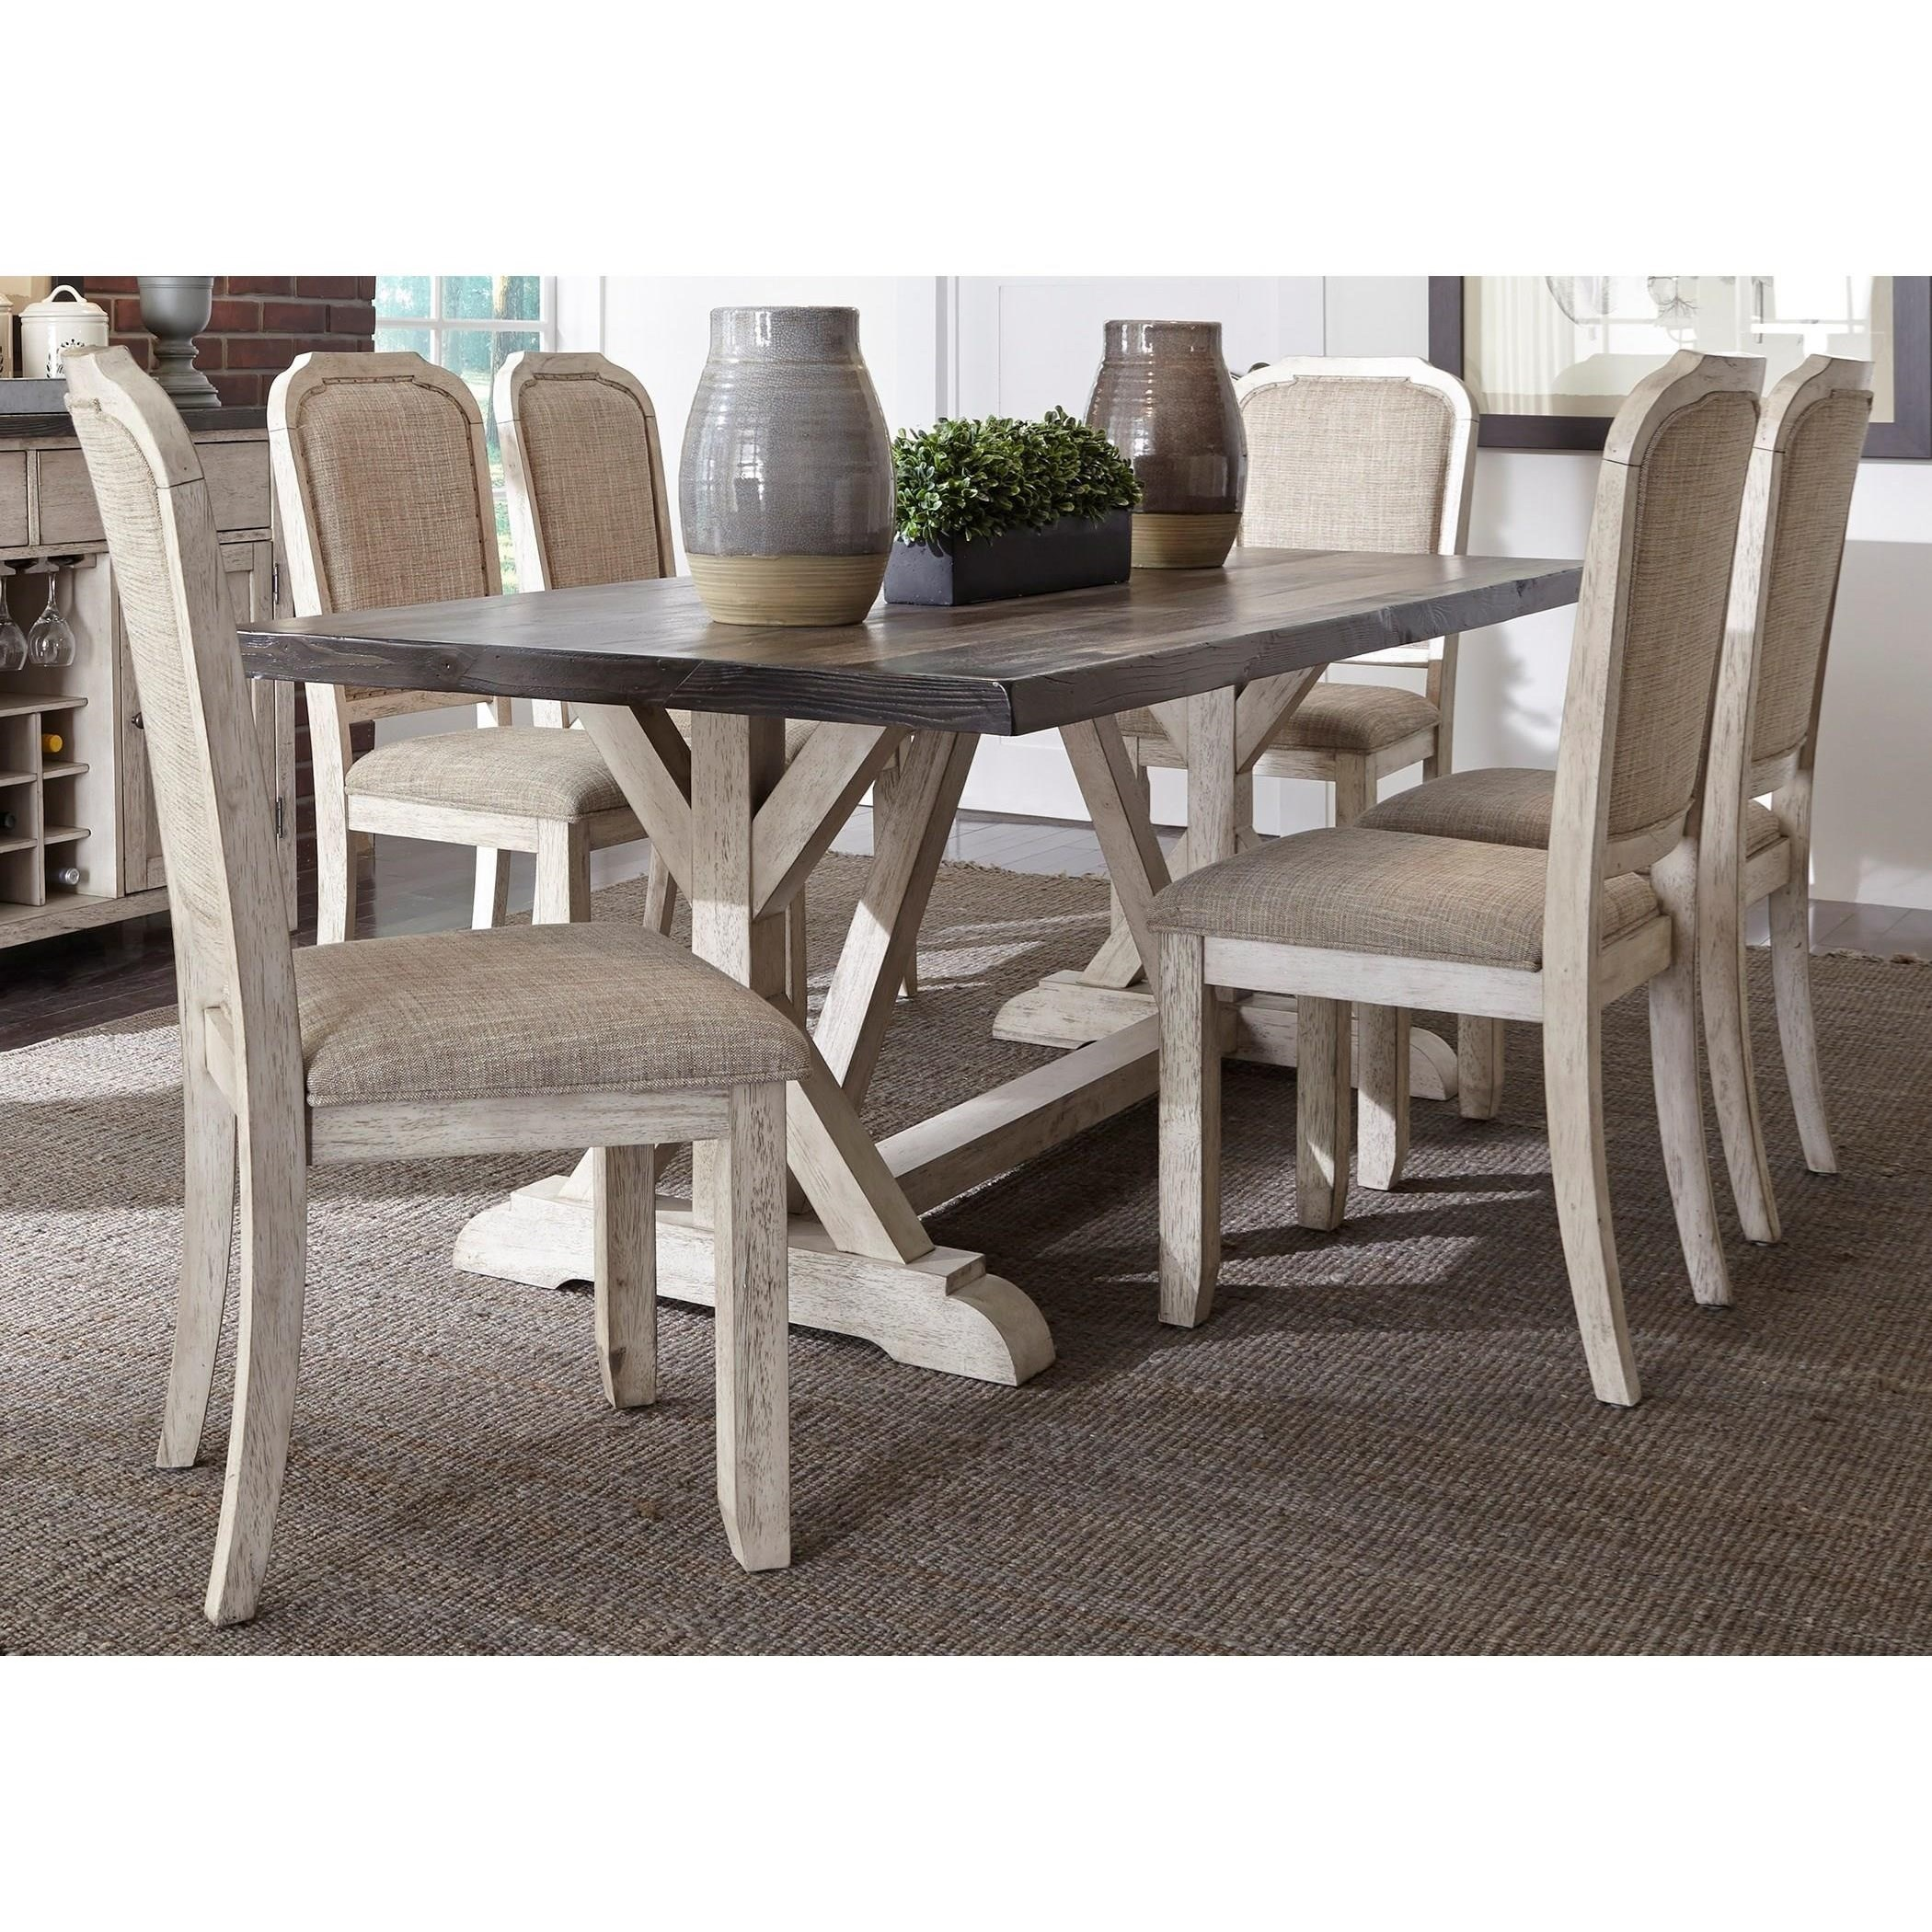 Trestle Dining Room Table: Willowrun Relaxed Vintage 7-Piece Trestle Table Set